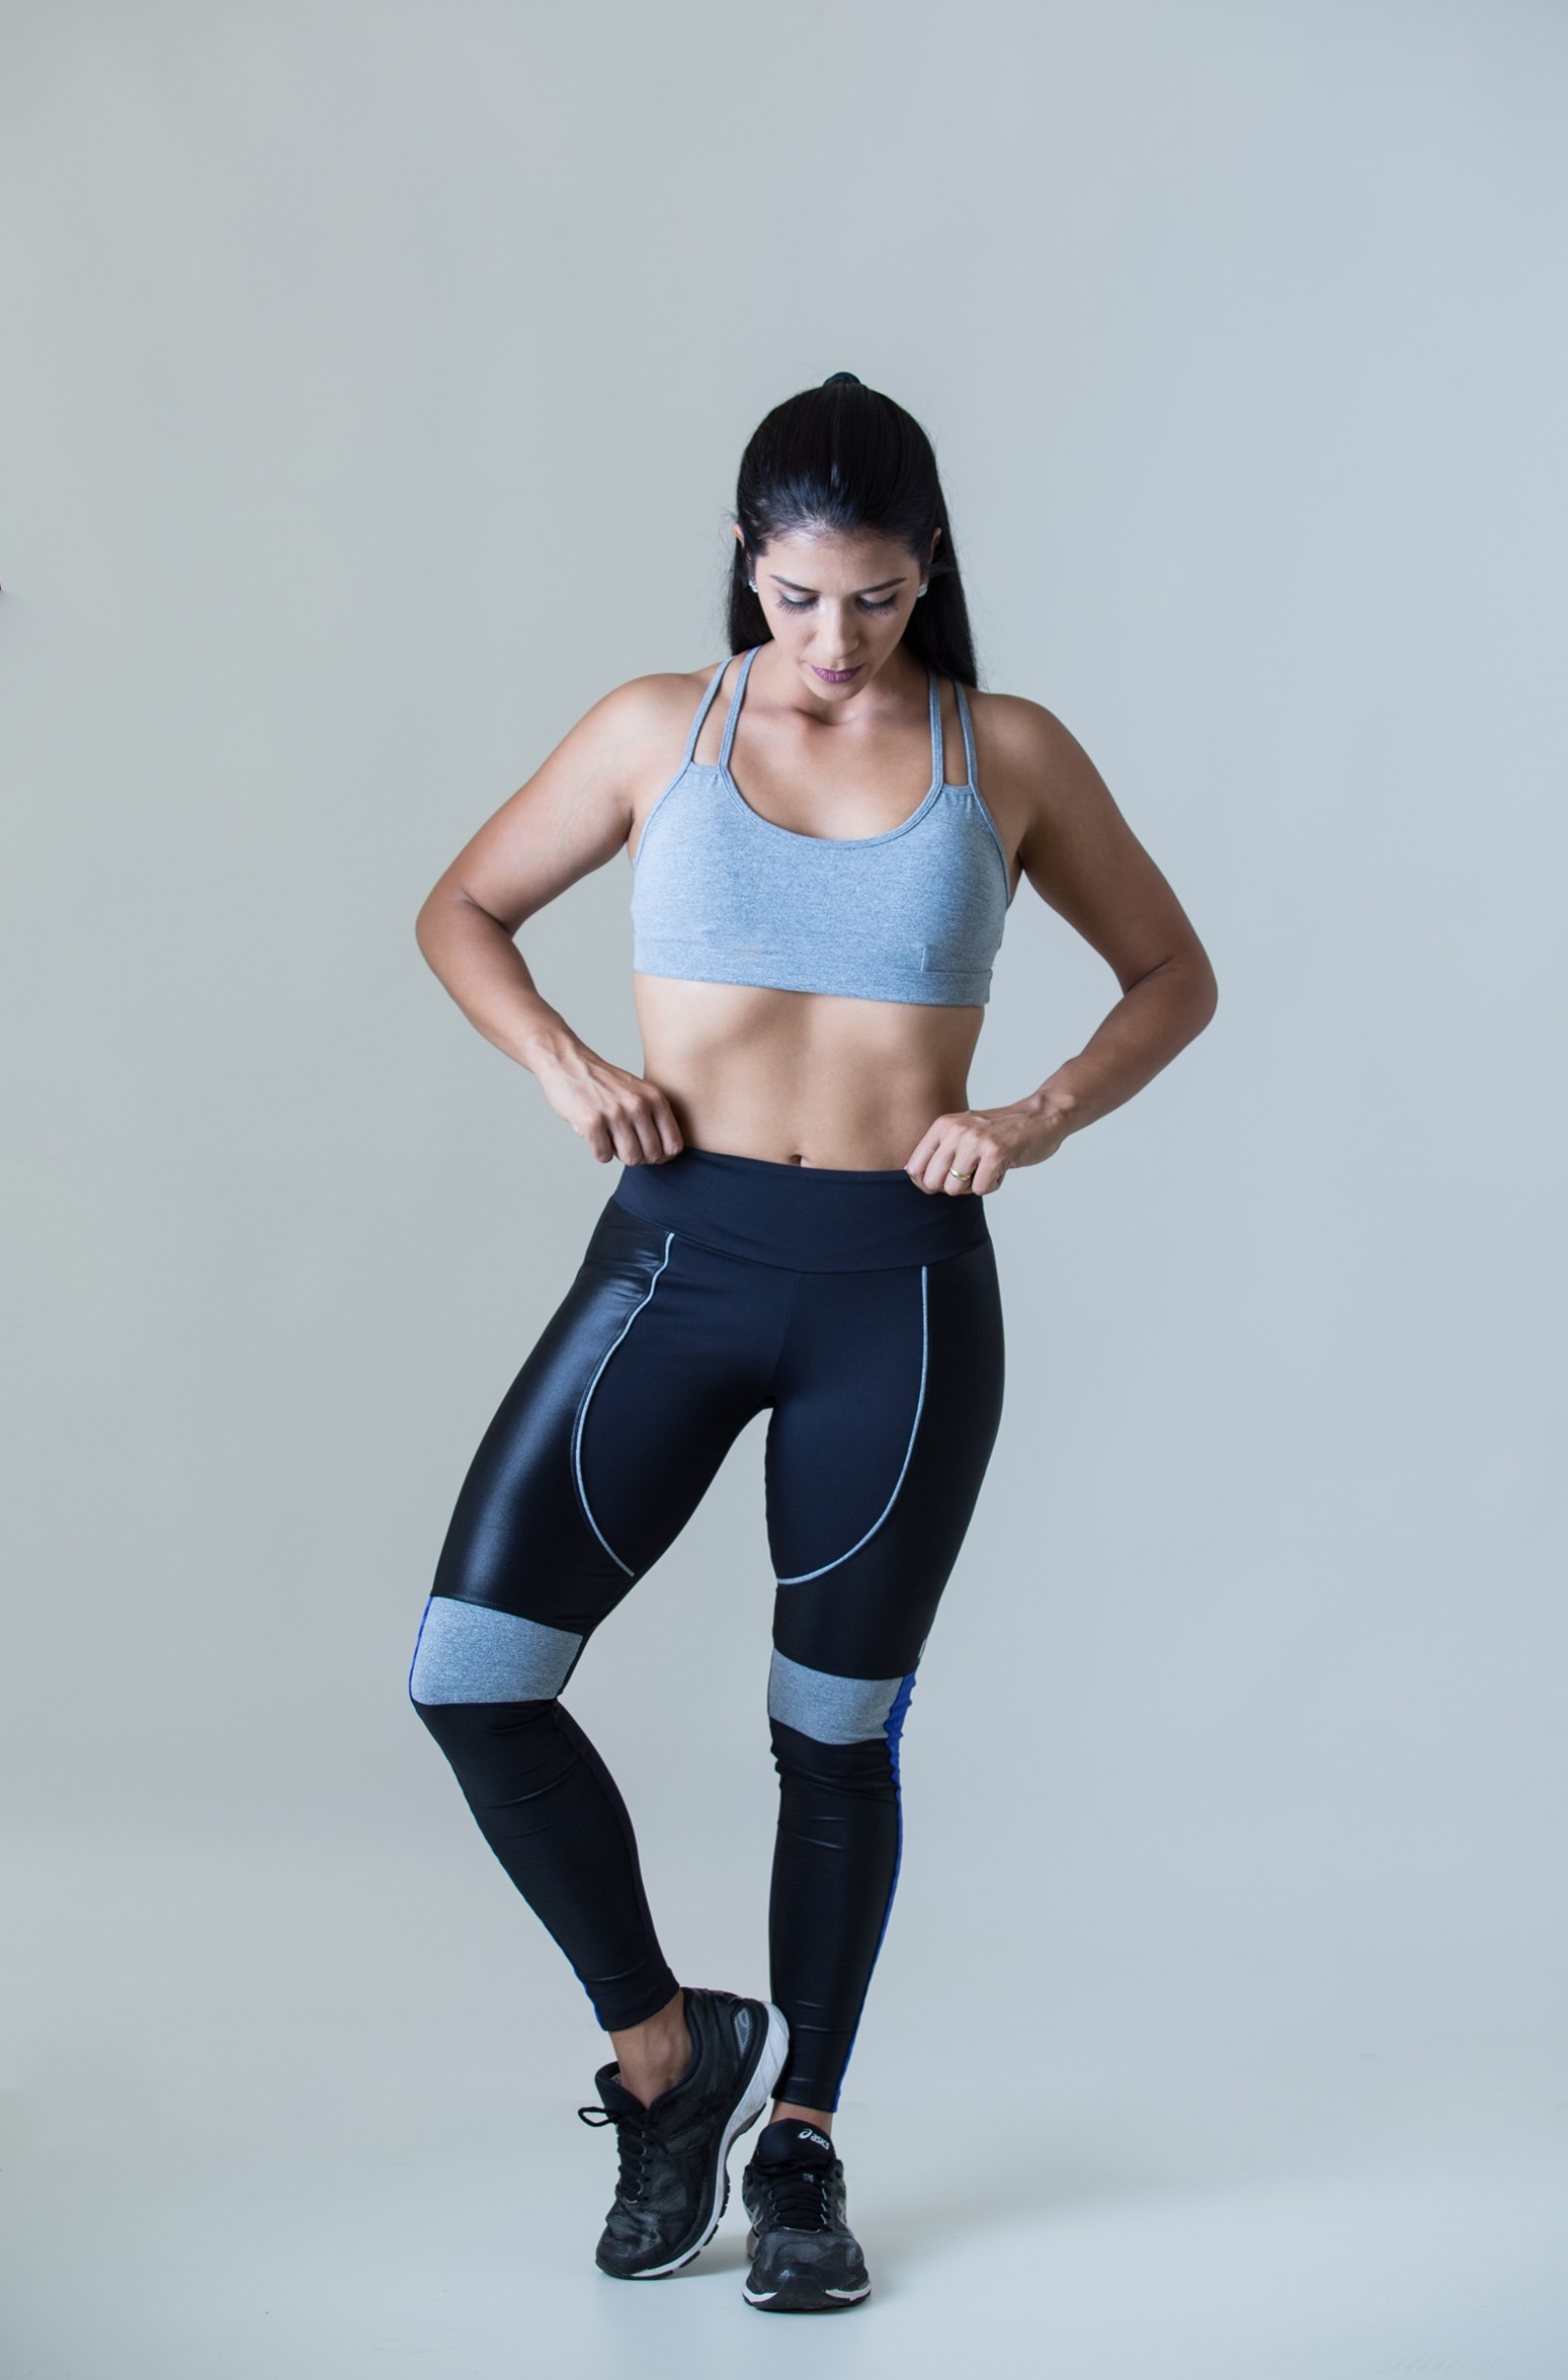 Top Perfection Mescla, Coleção Plenitude - NKT Fitwear Moda Fitness